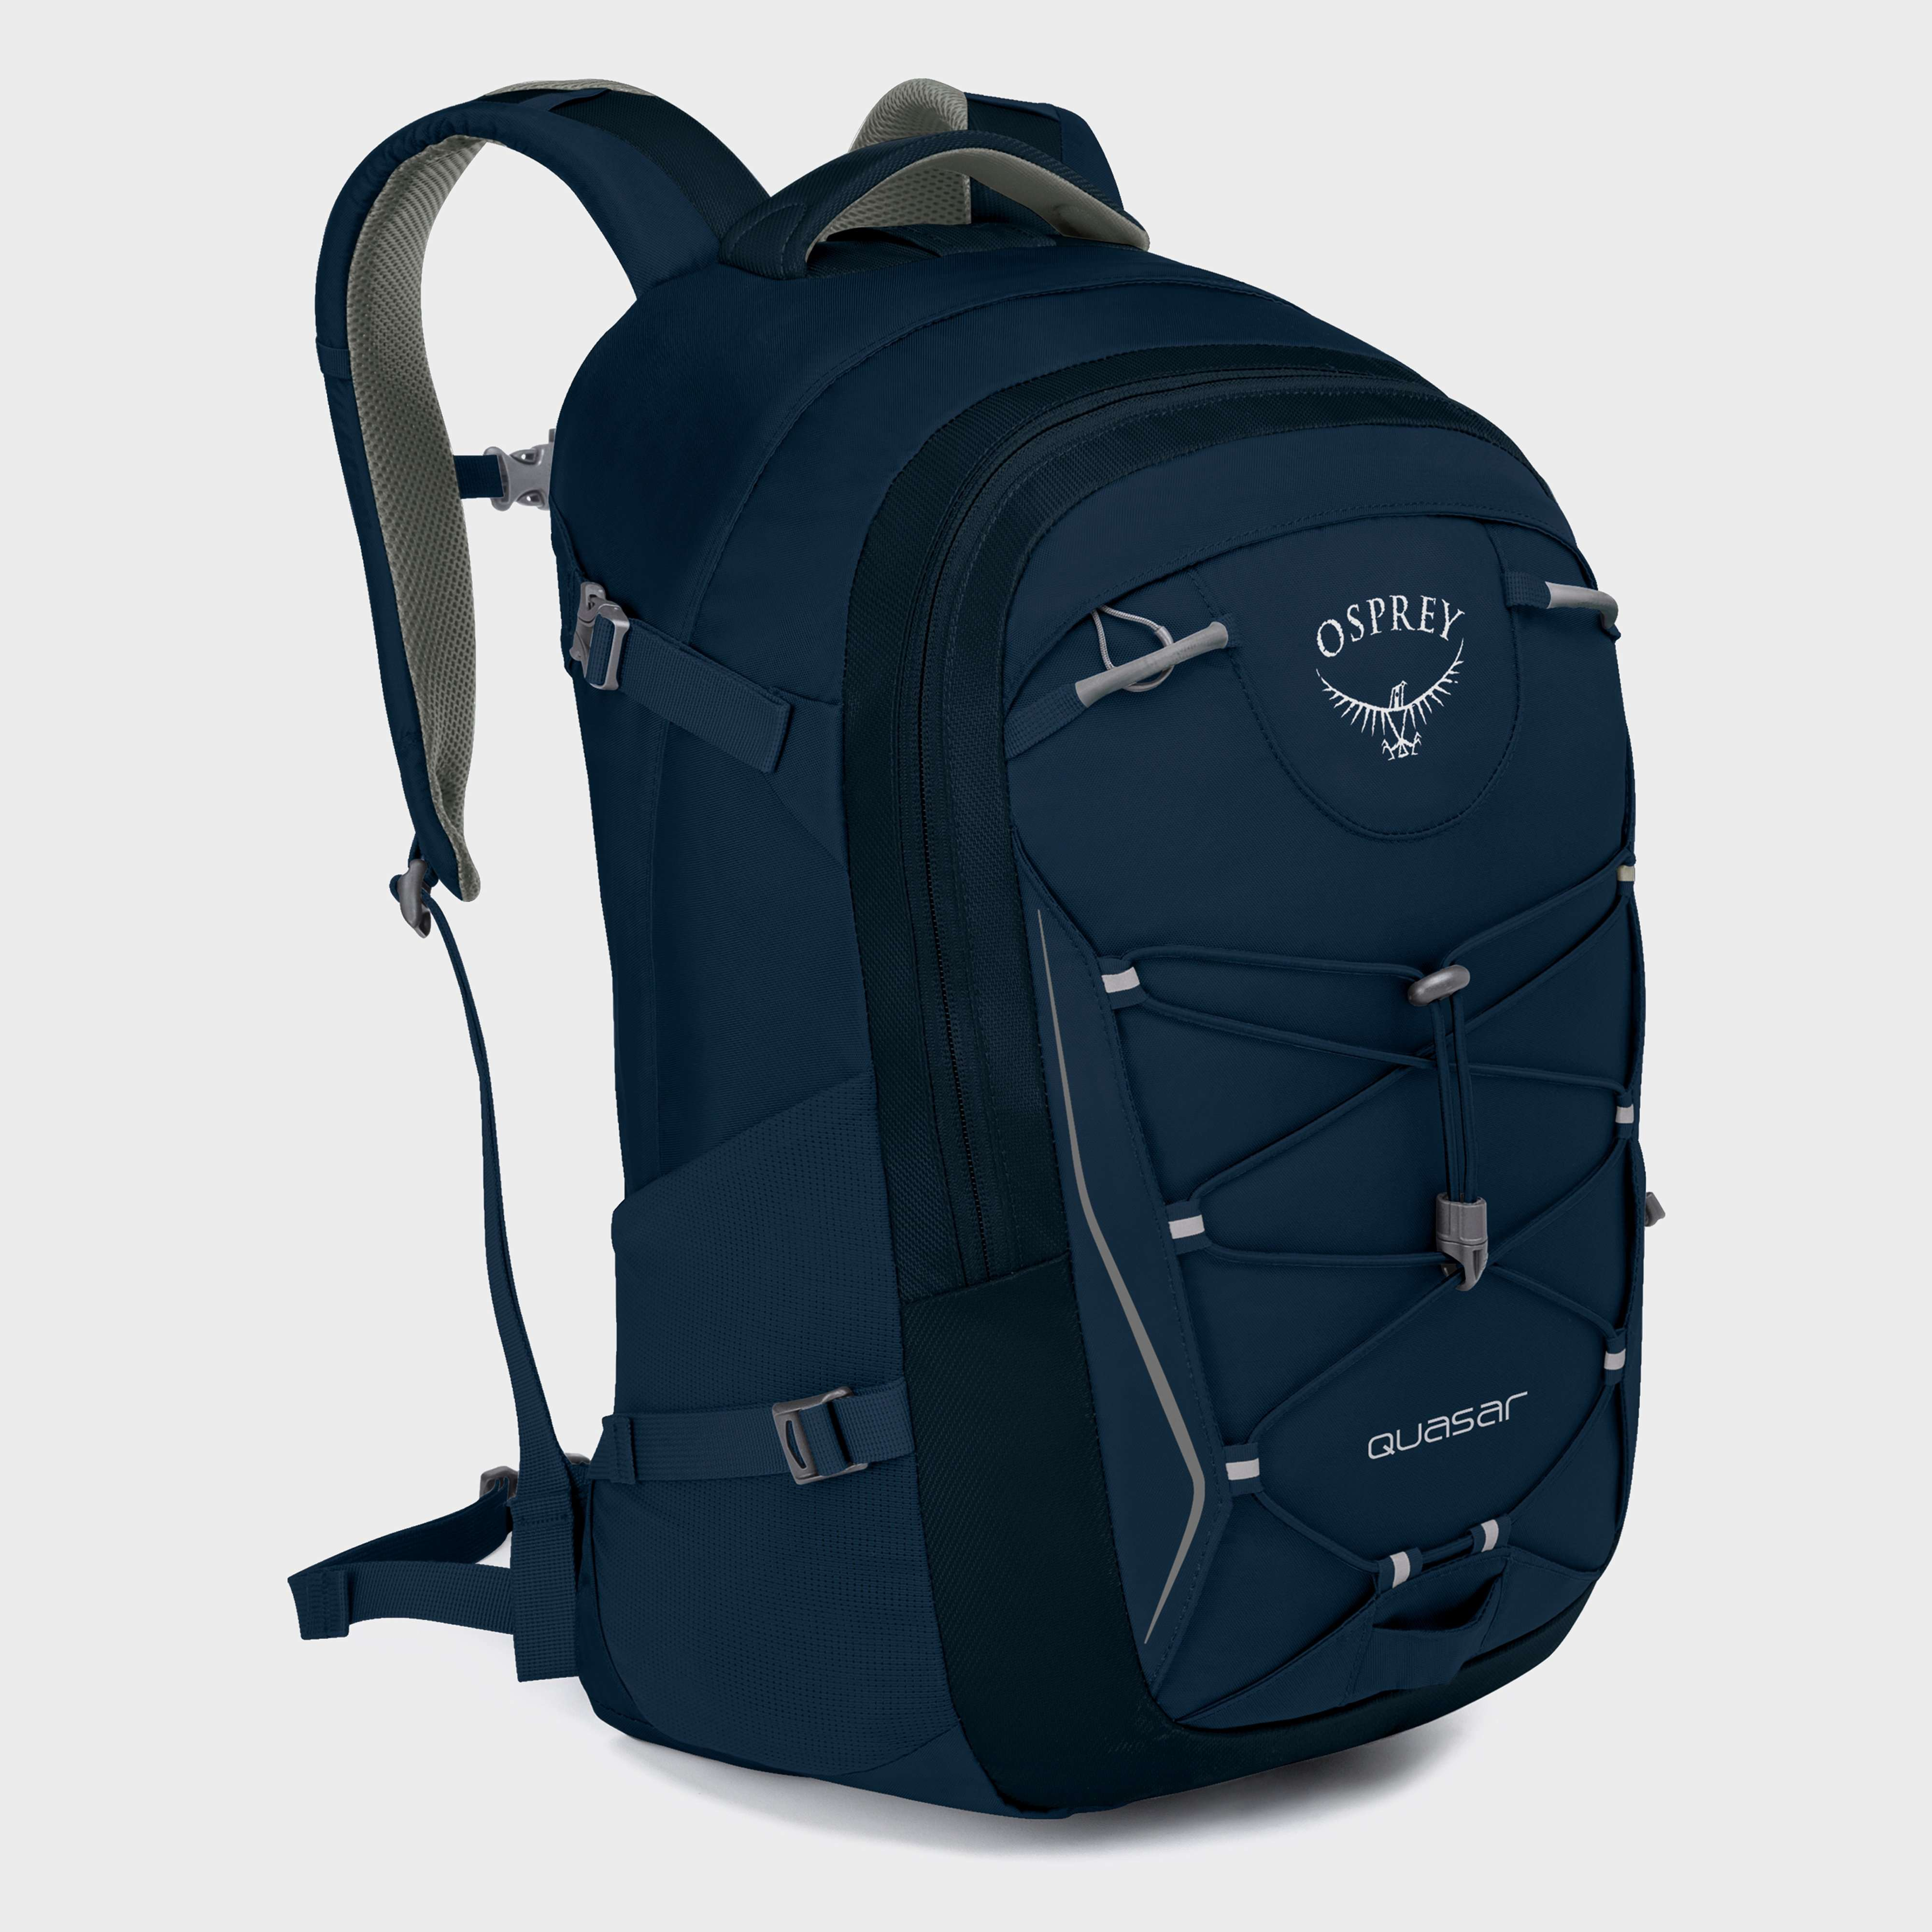 OSPREY Men's Quasar 28 Backpack